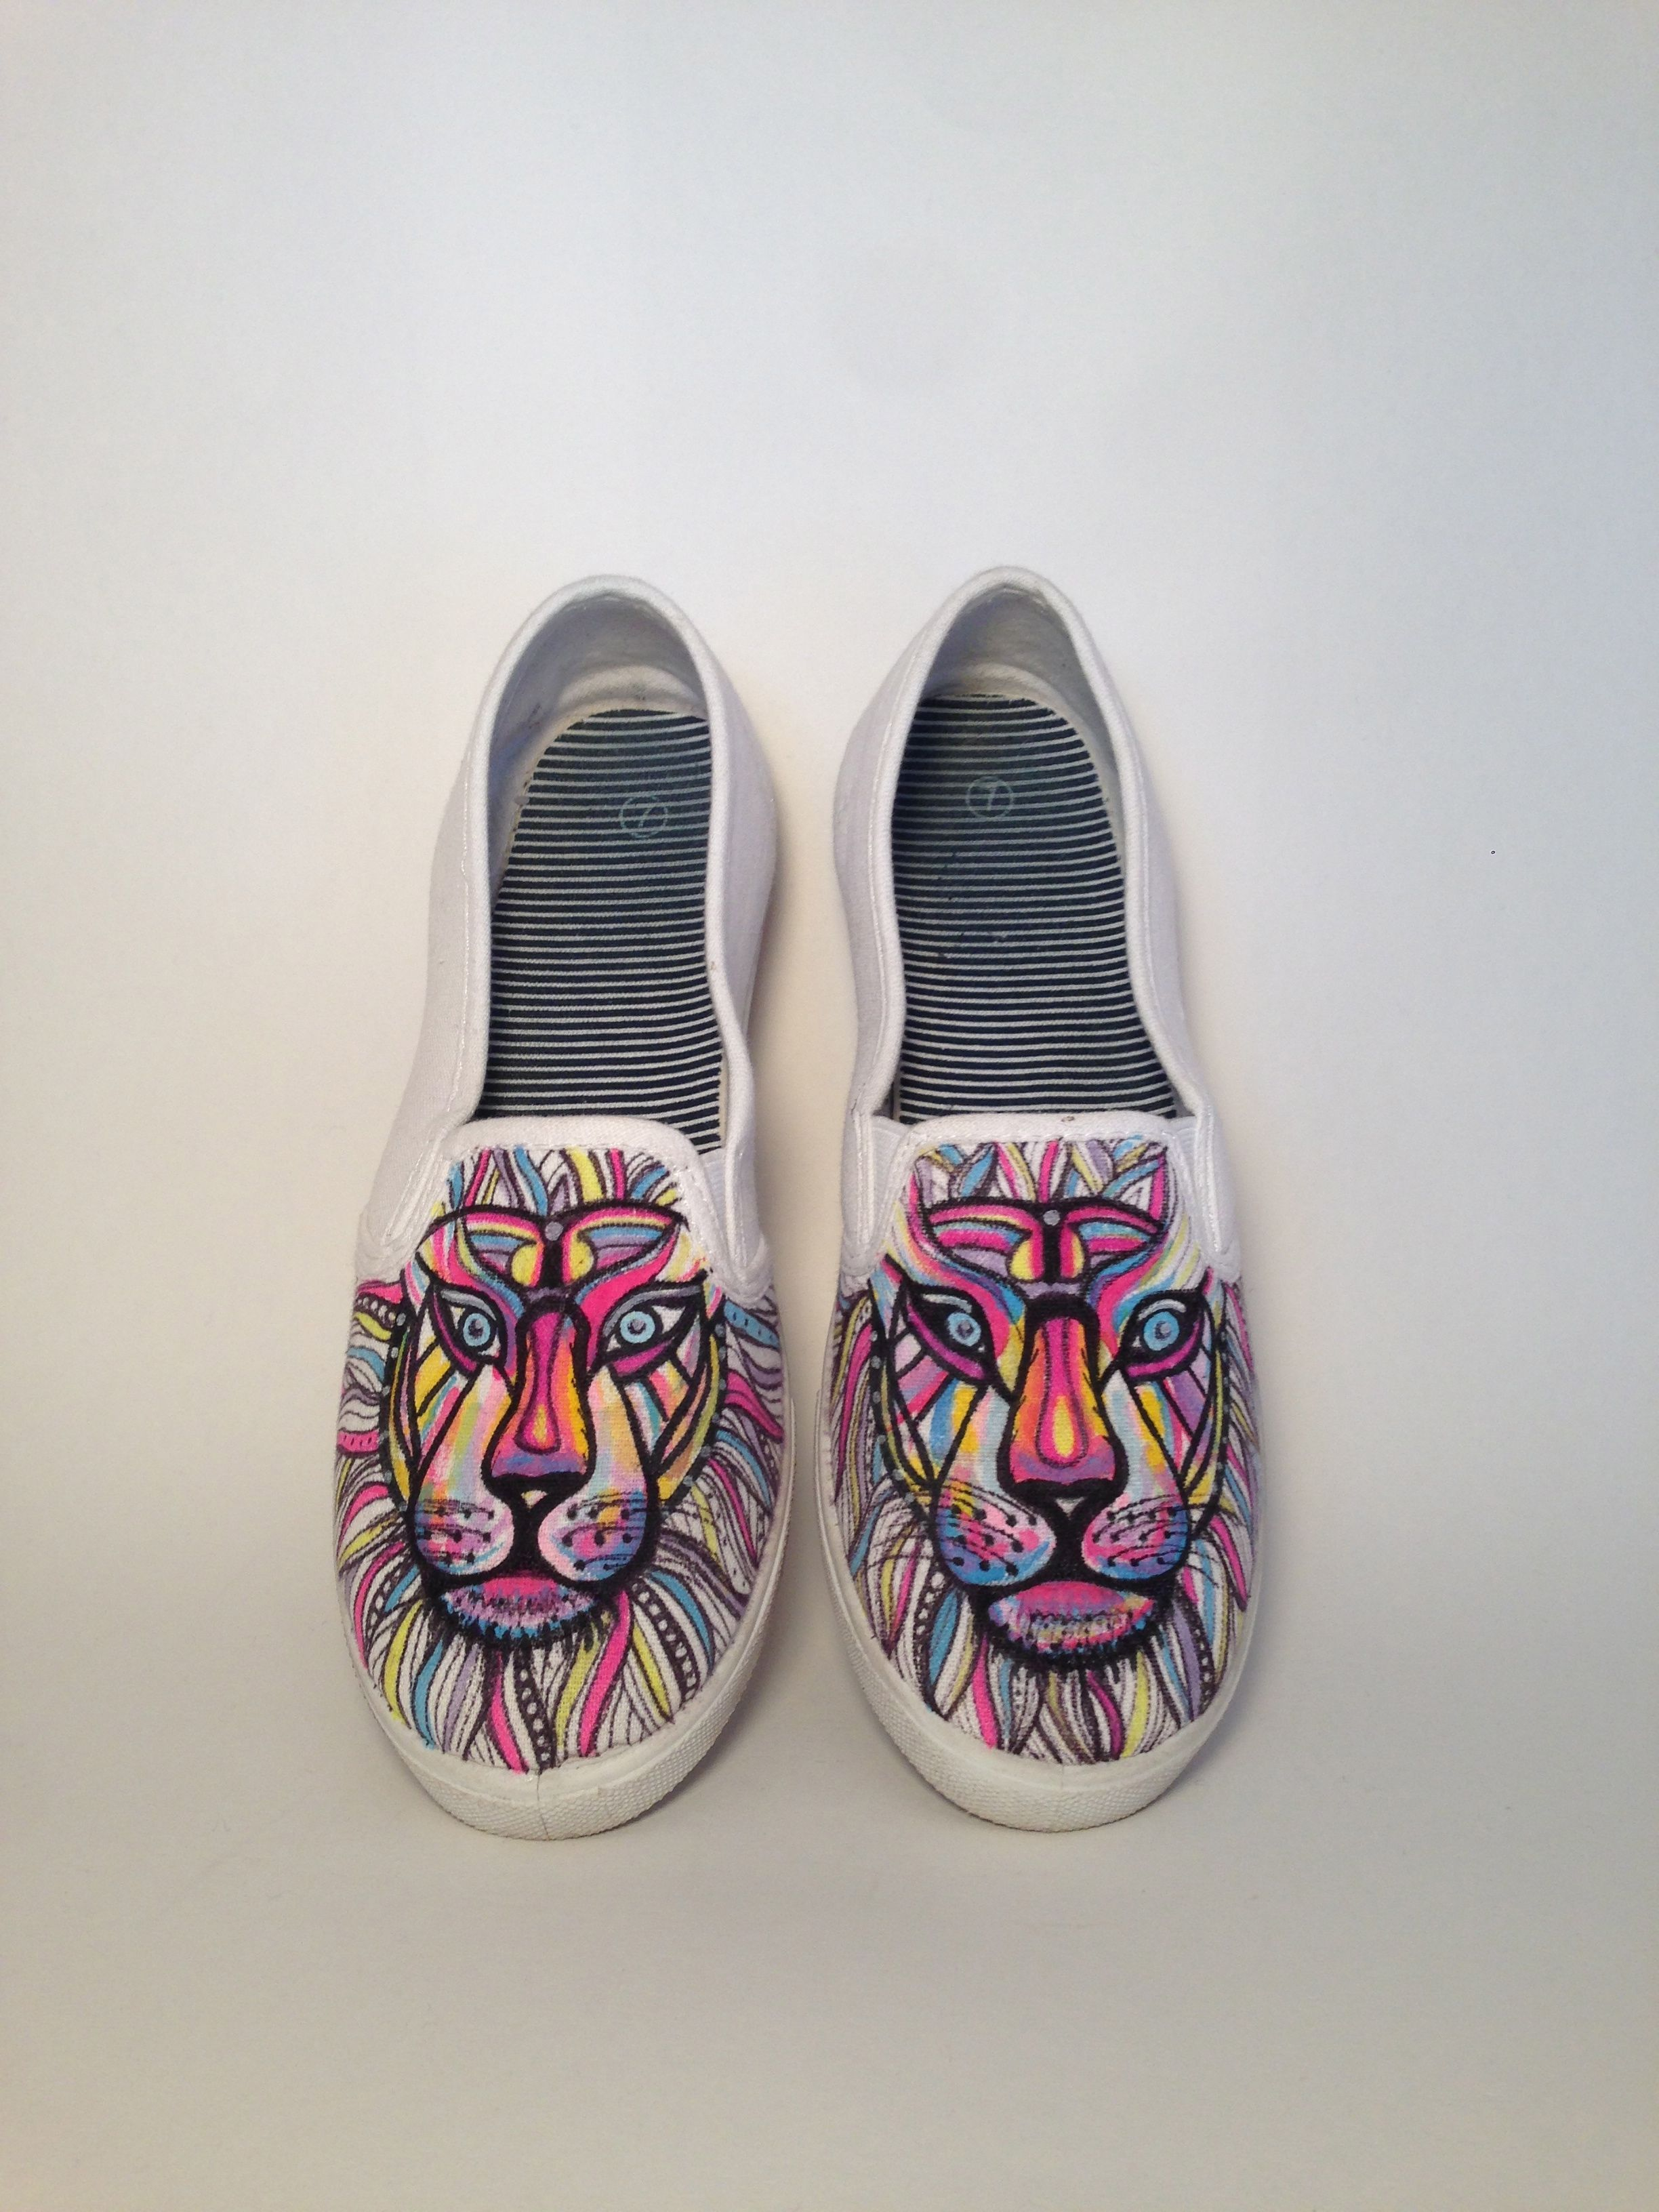 Lion Face Canvas Sneakers In 2020 Sharpie Shoes Painted Canvas